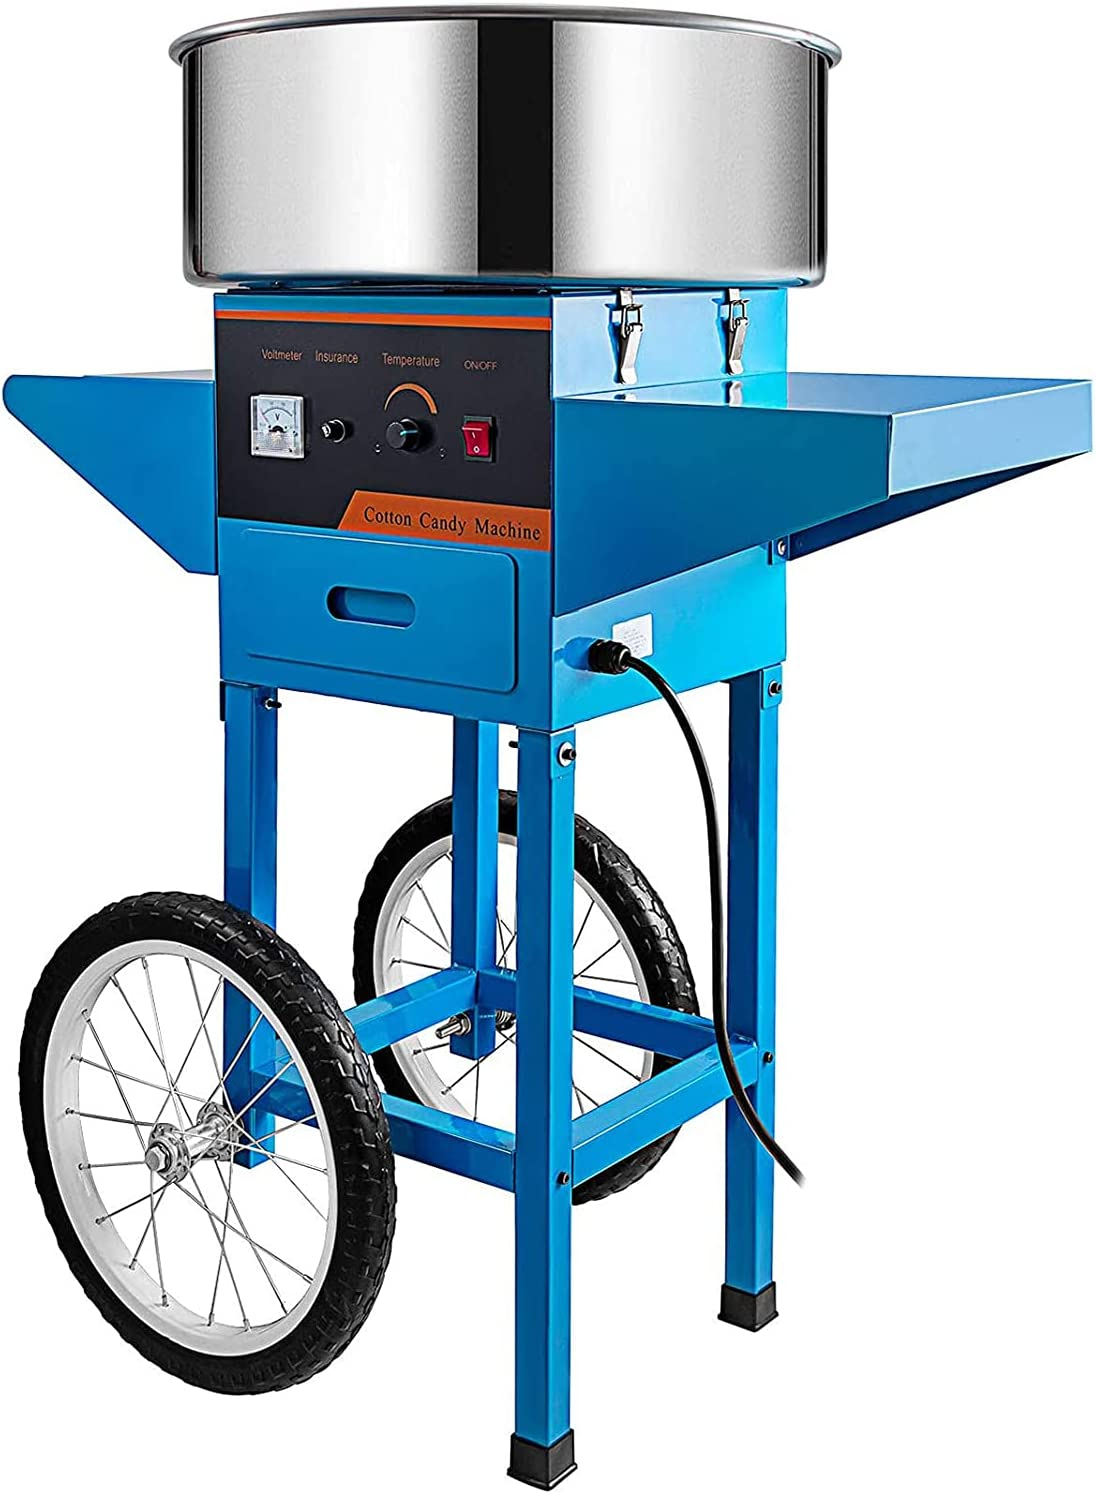 WLL-DP Commercial Cotton Candy Machine Auto Inch All items free shipping Be super welcome Cart 20.5 with